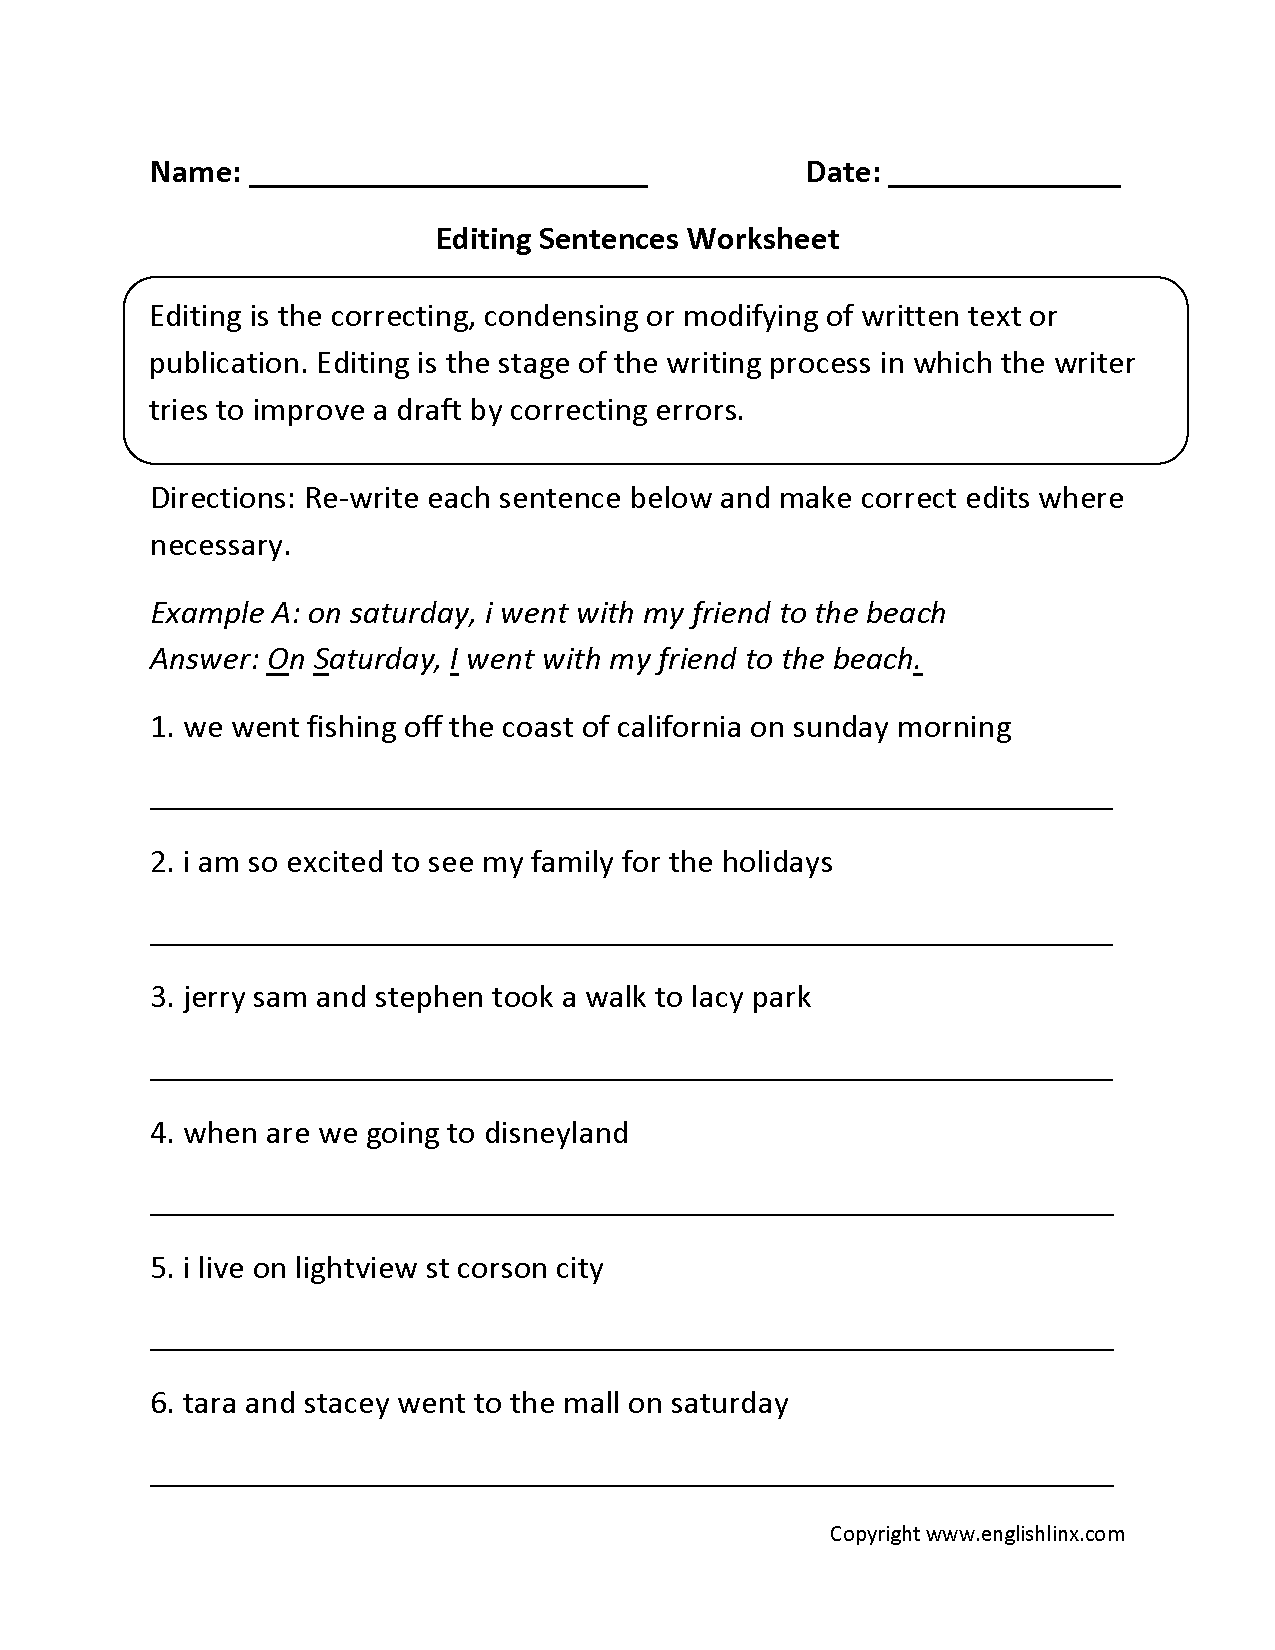 worksheet Editing Sentences Worksheets writing worksheets editing worksheets